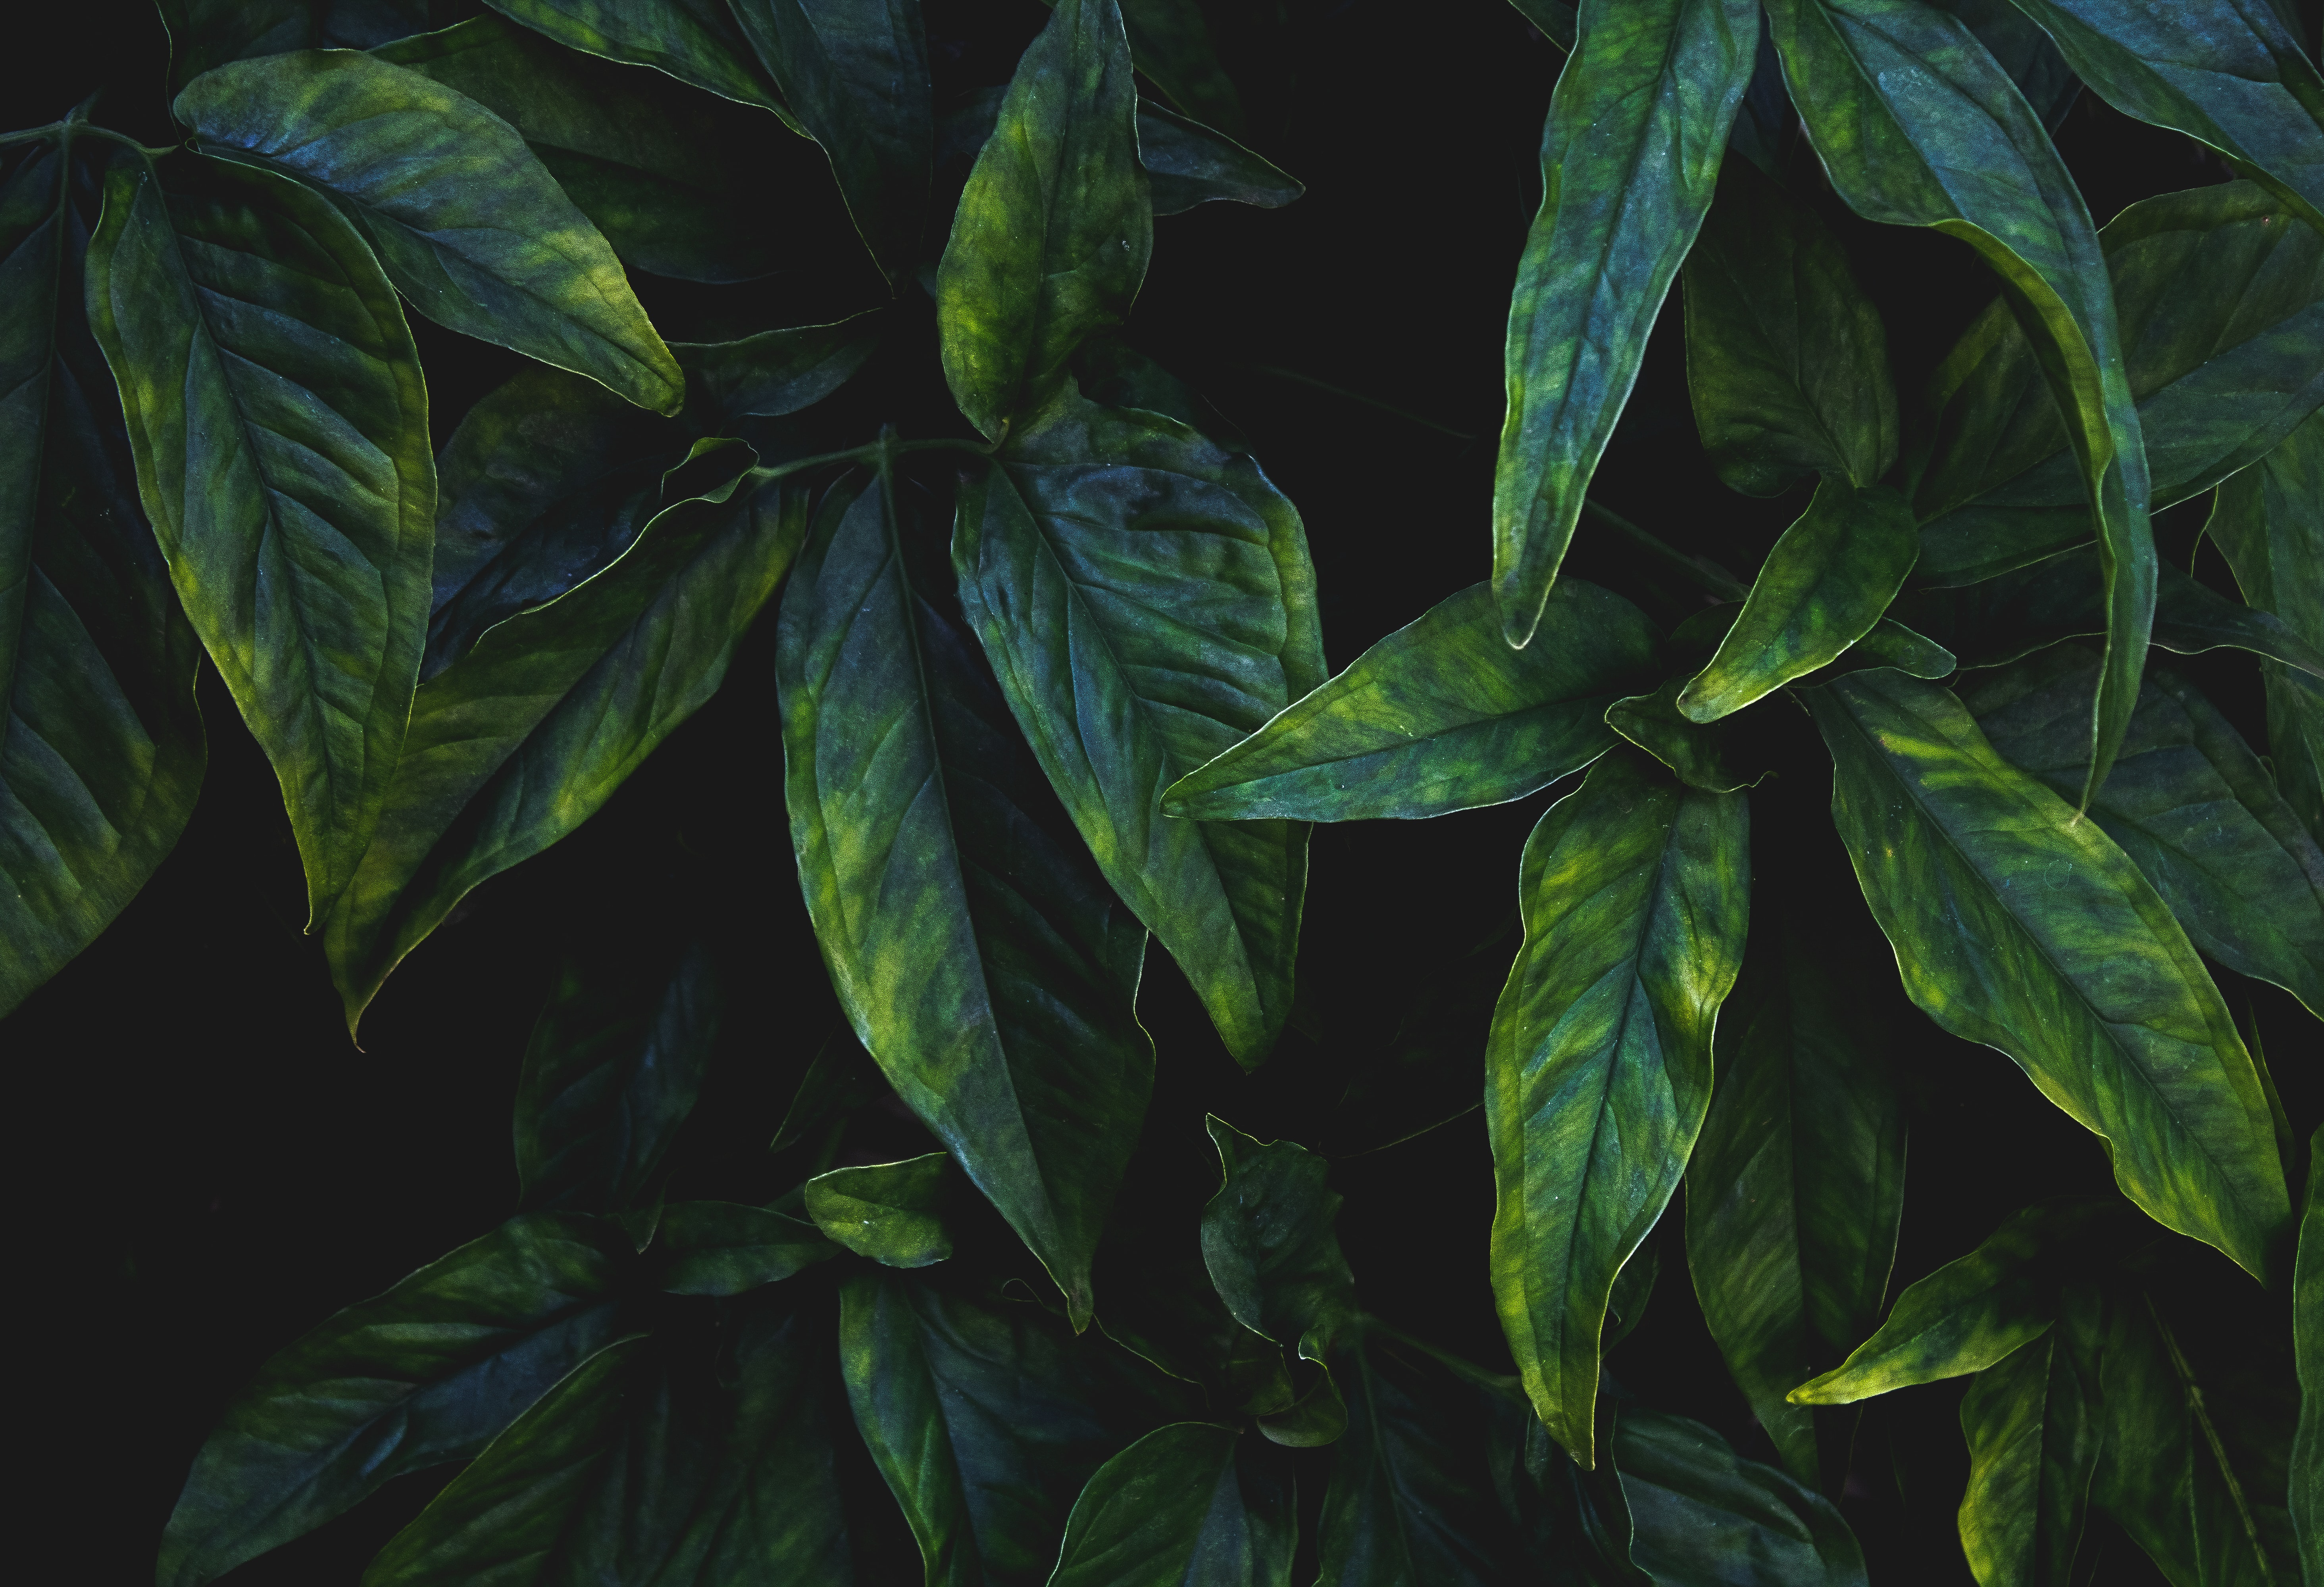 142685 download wallpaper Macro, Leaves, Branches, Veins screensavers and pictures for free